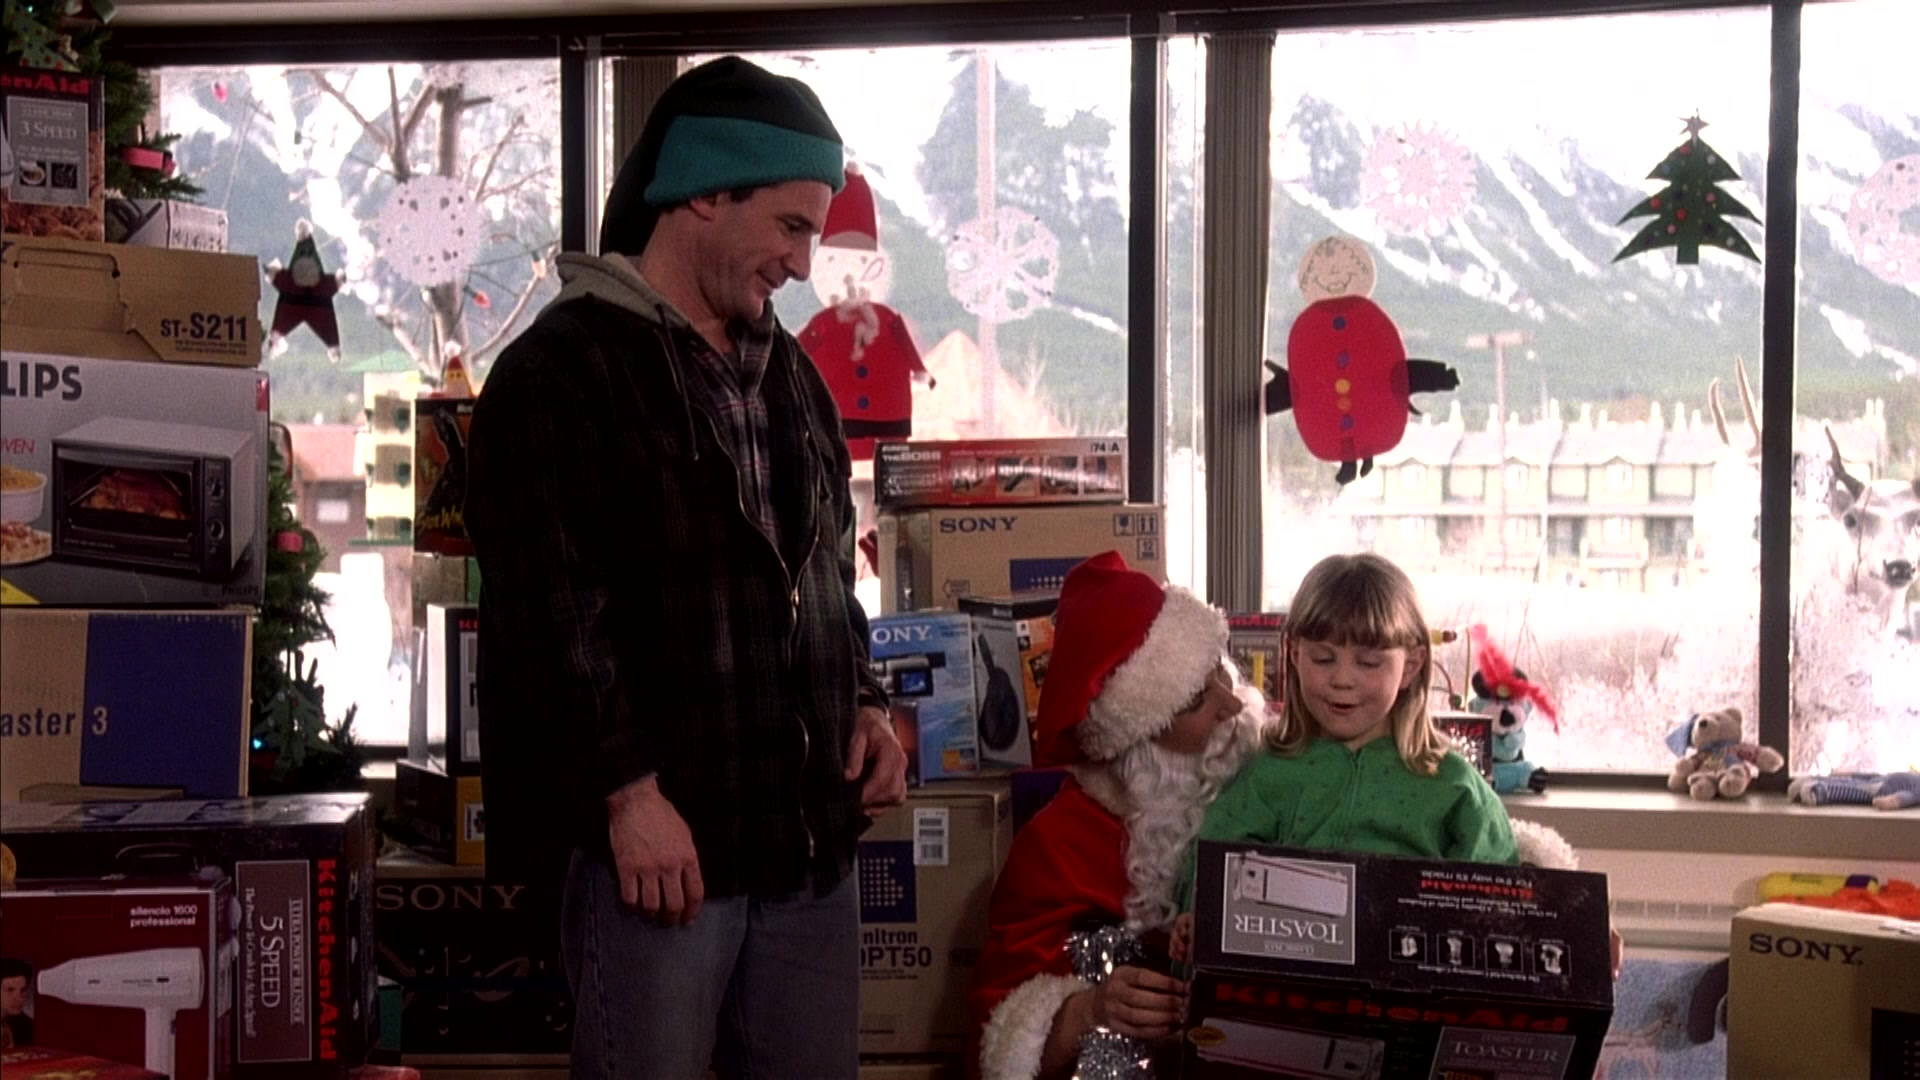 Ill Be Home For Christmas 1998.Kitchenaid And Sony In I Ll Be Home For Christmas 1998 Movie